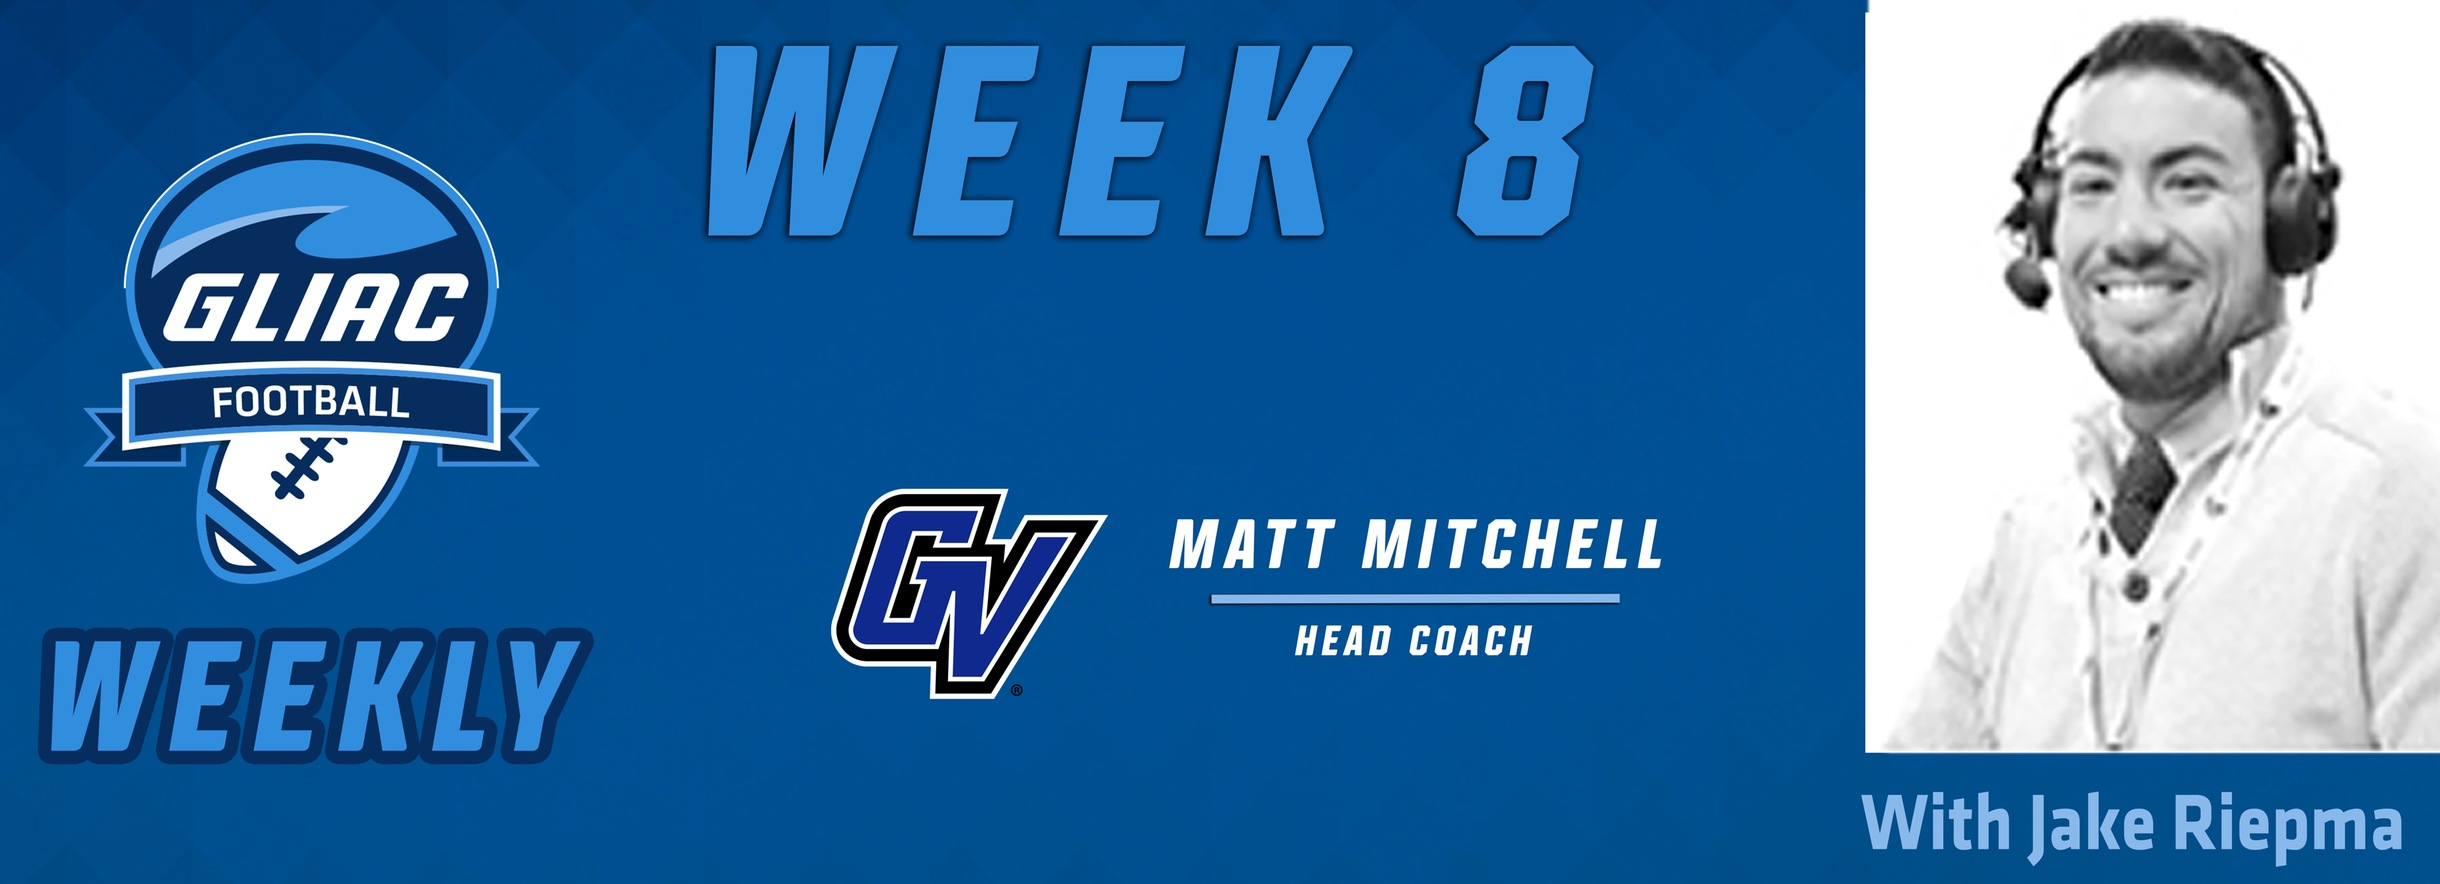 Football Weekly - Week 8 | GVSU Matt Mitchell